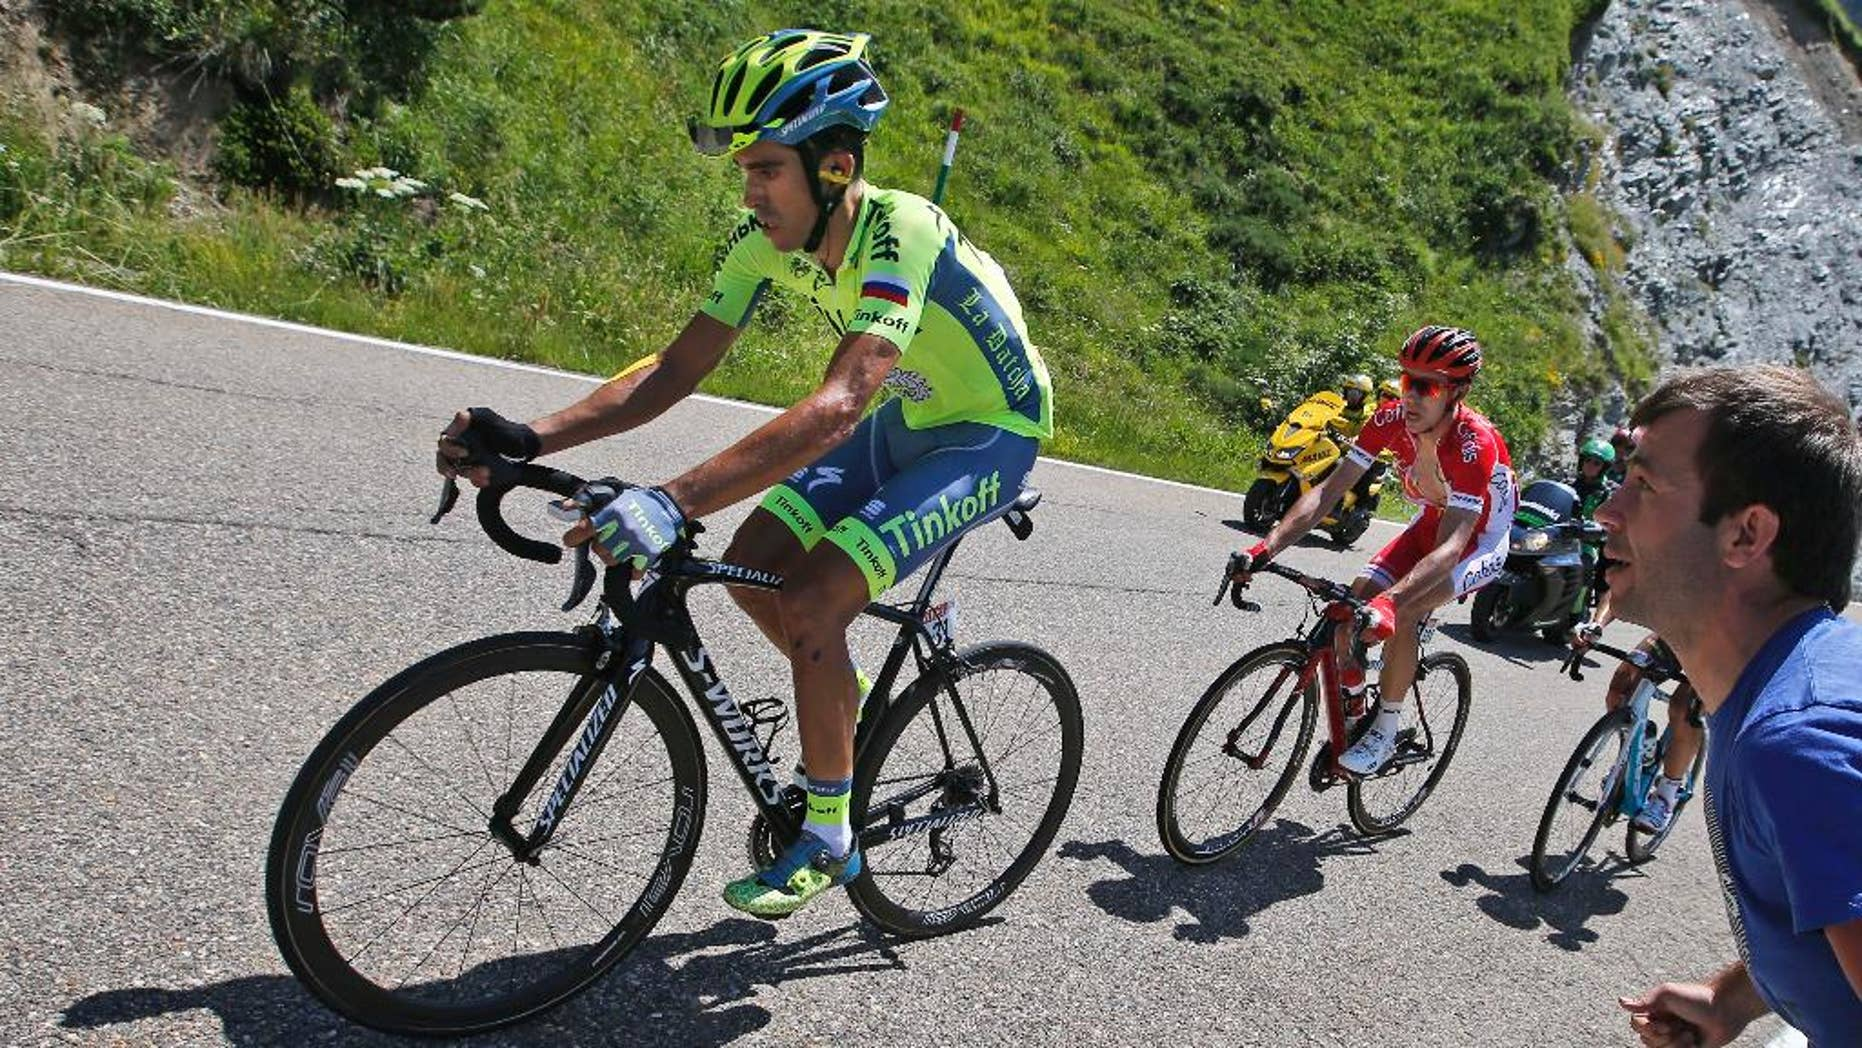 Spain's Alberto Contador, left, strains as he rides in the back of the pack with France's Nicolas Edet, right, during the ninth stage of the Tour de France cycling race Sunday.